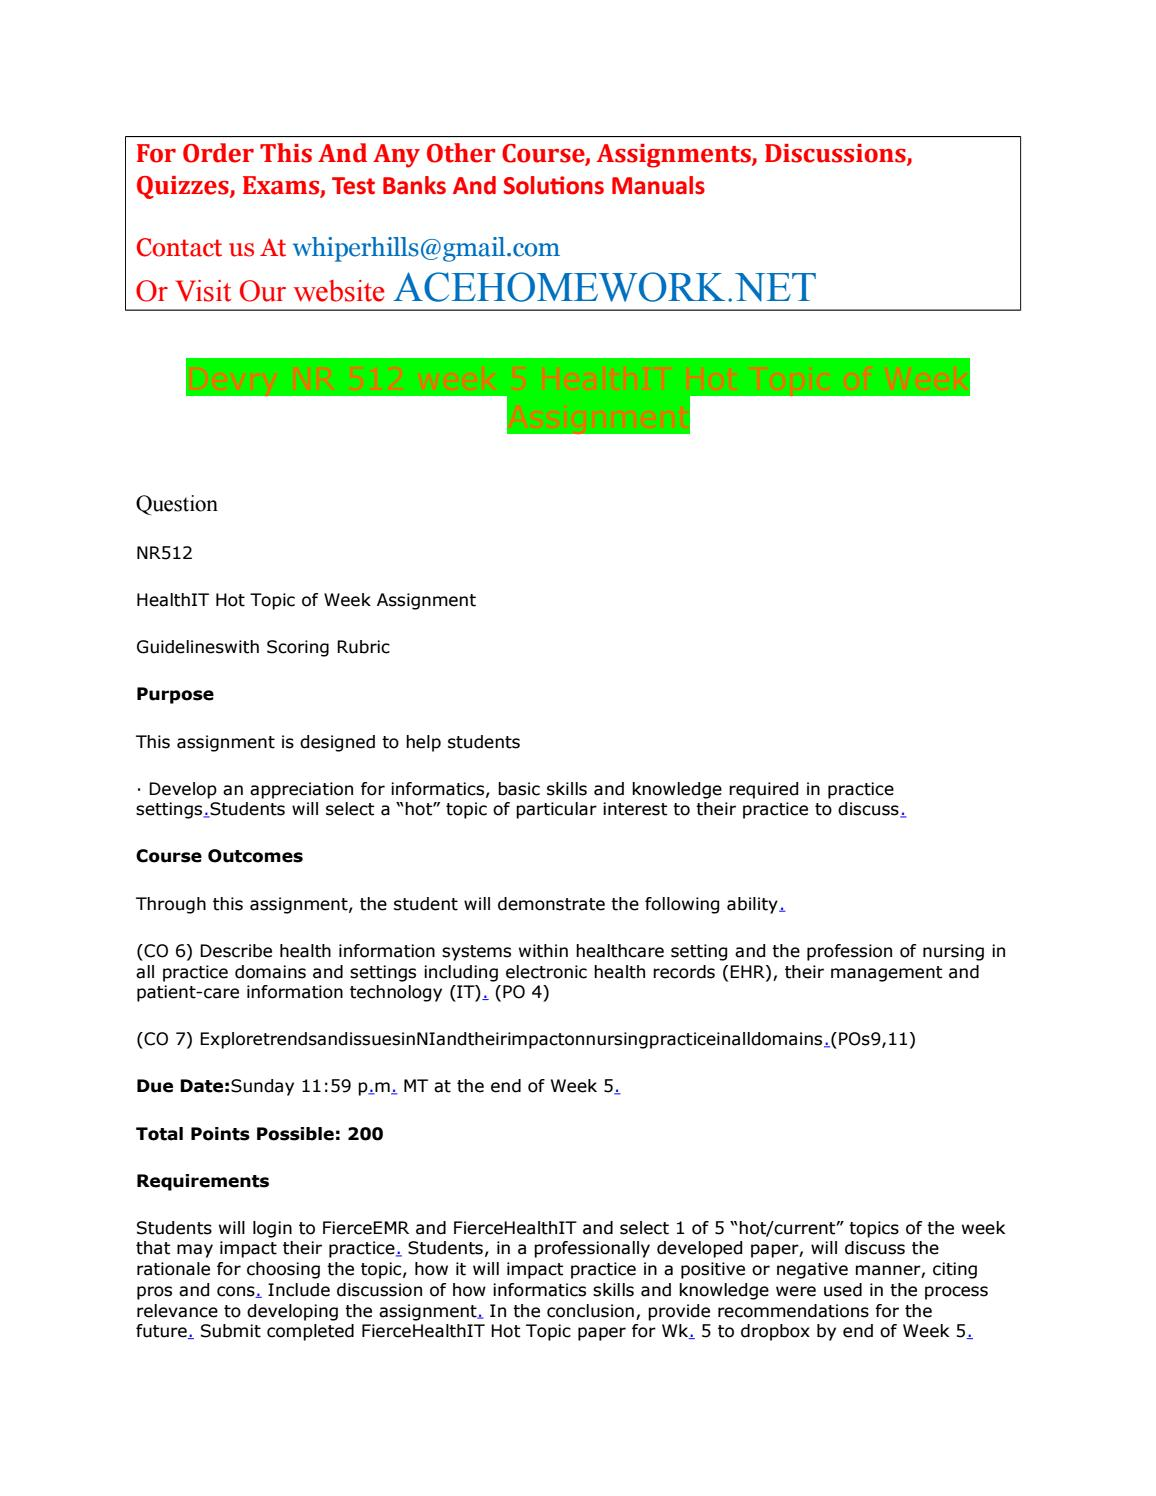 nr 361 rn information systems in Introduction to accounting information systems, essentials of accounting, intermediate accounting i,  nr 439 research database assignment form,.